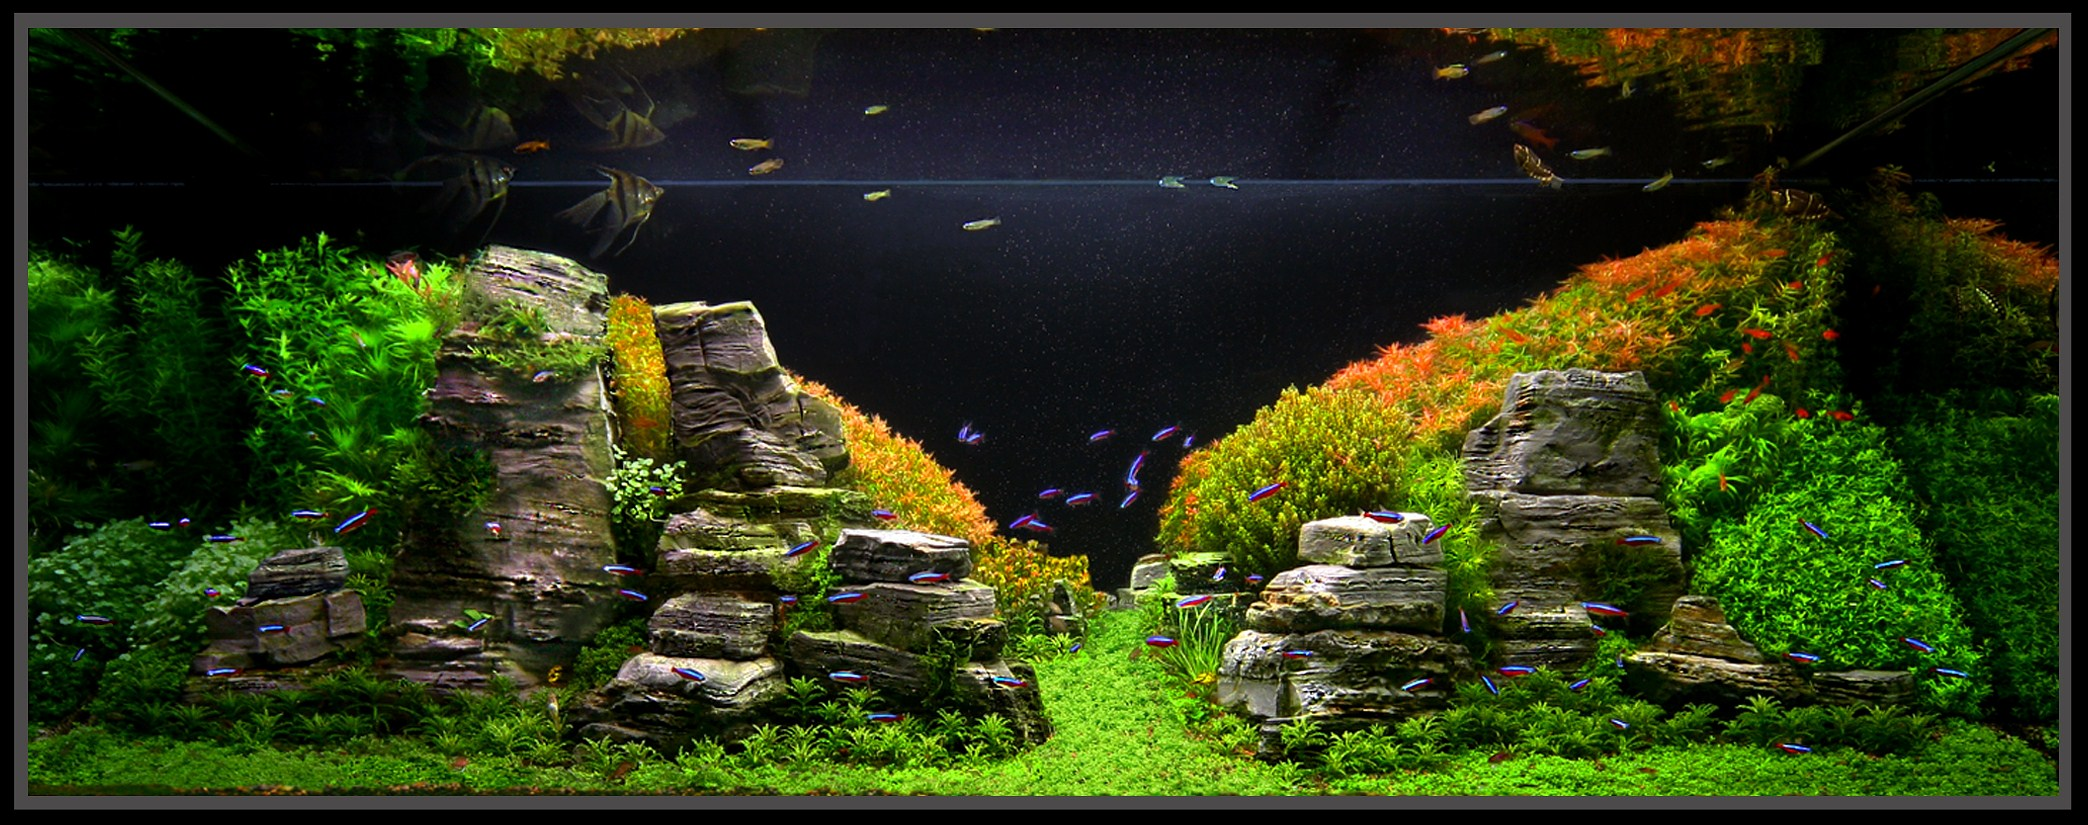 January 2011 Aquascape Of The Month Peruvian Nights Aquascaping World Forum